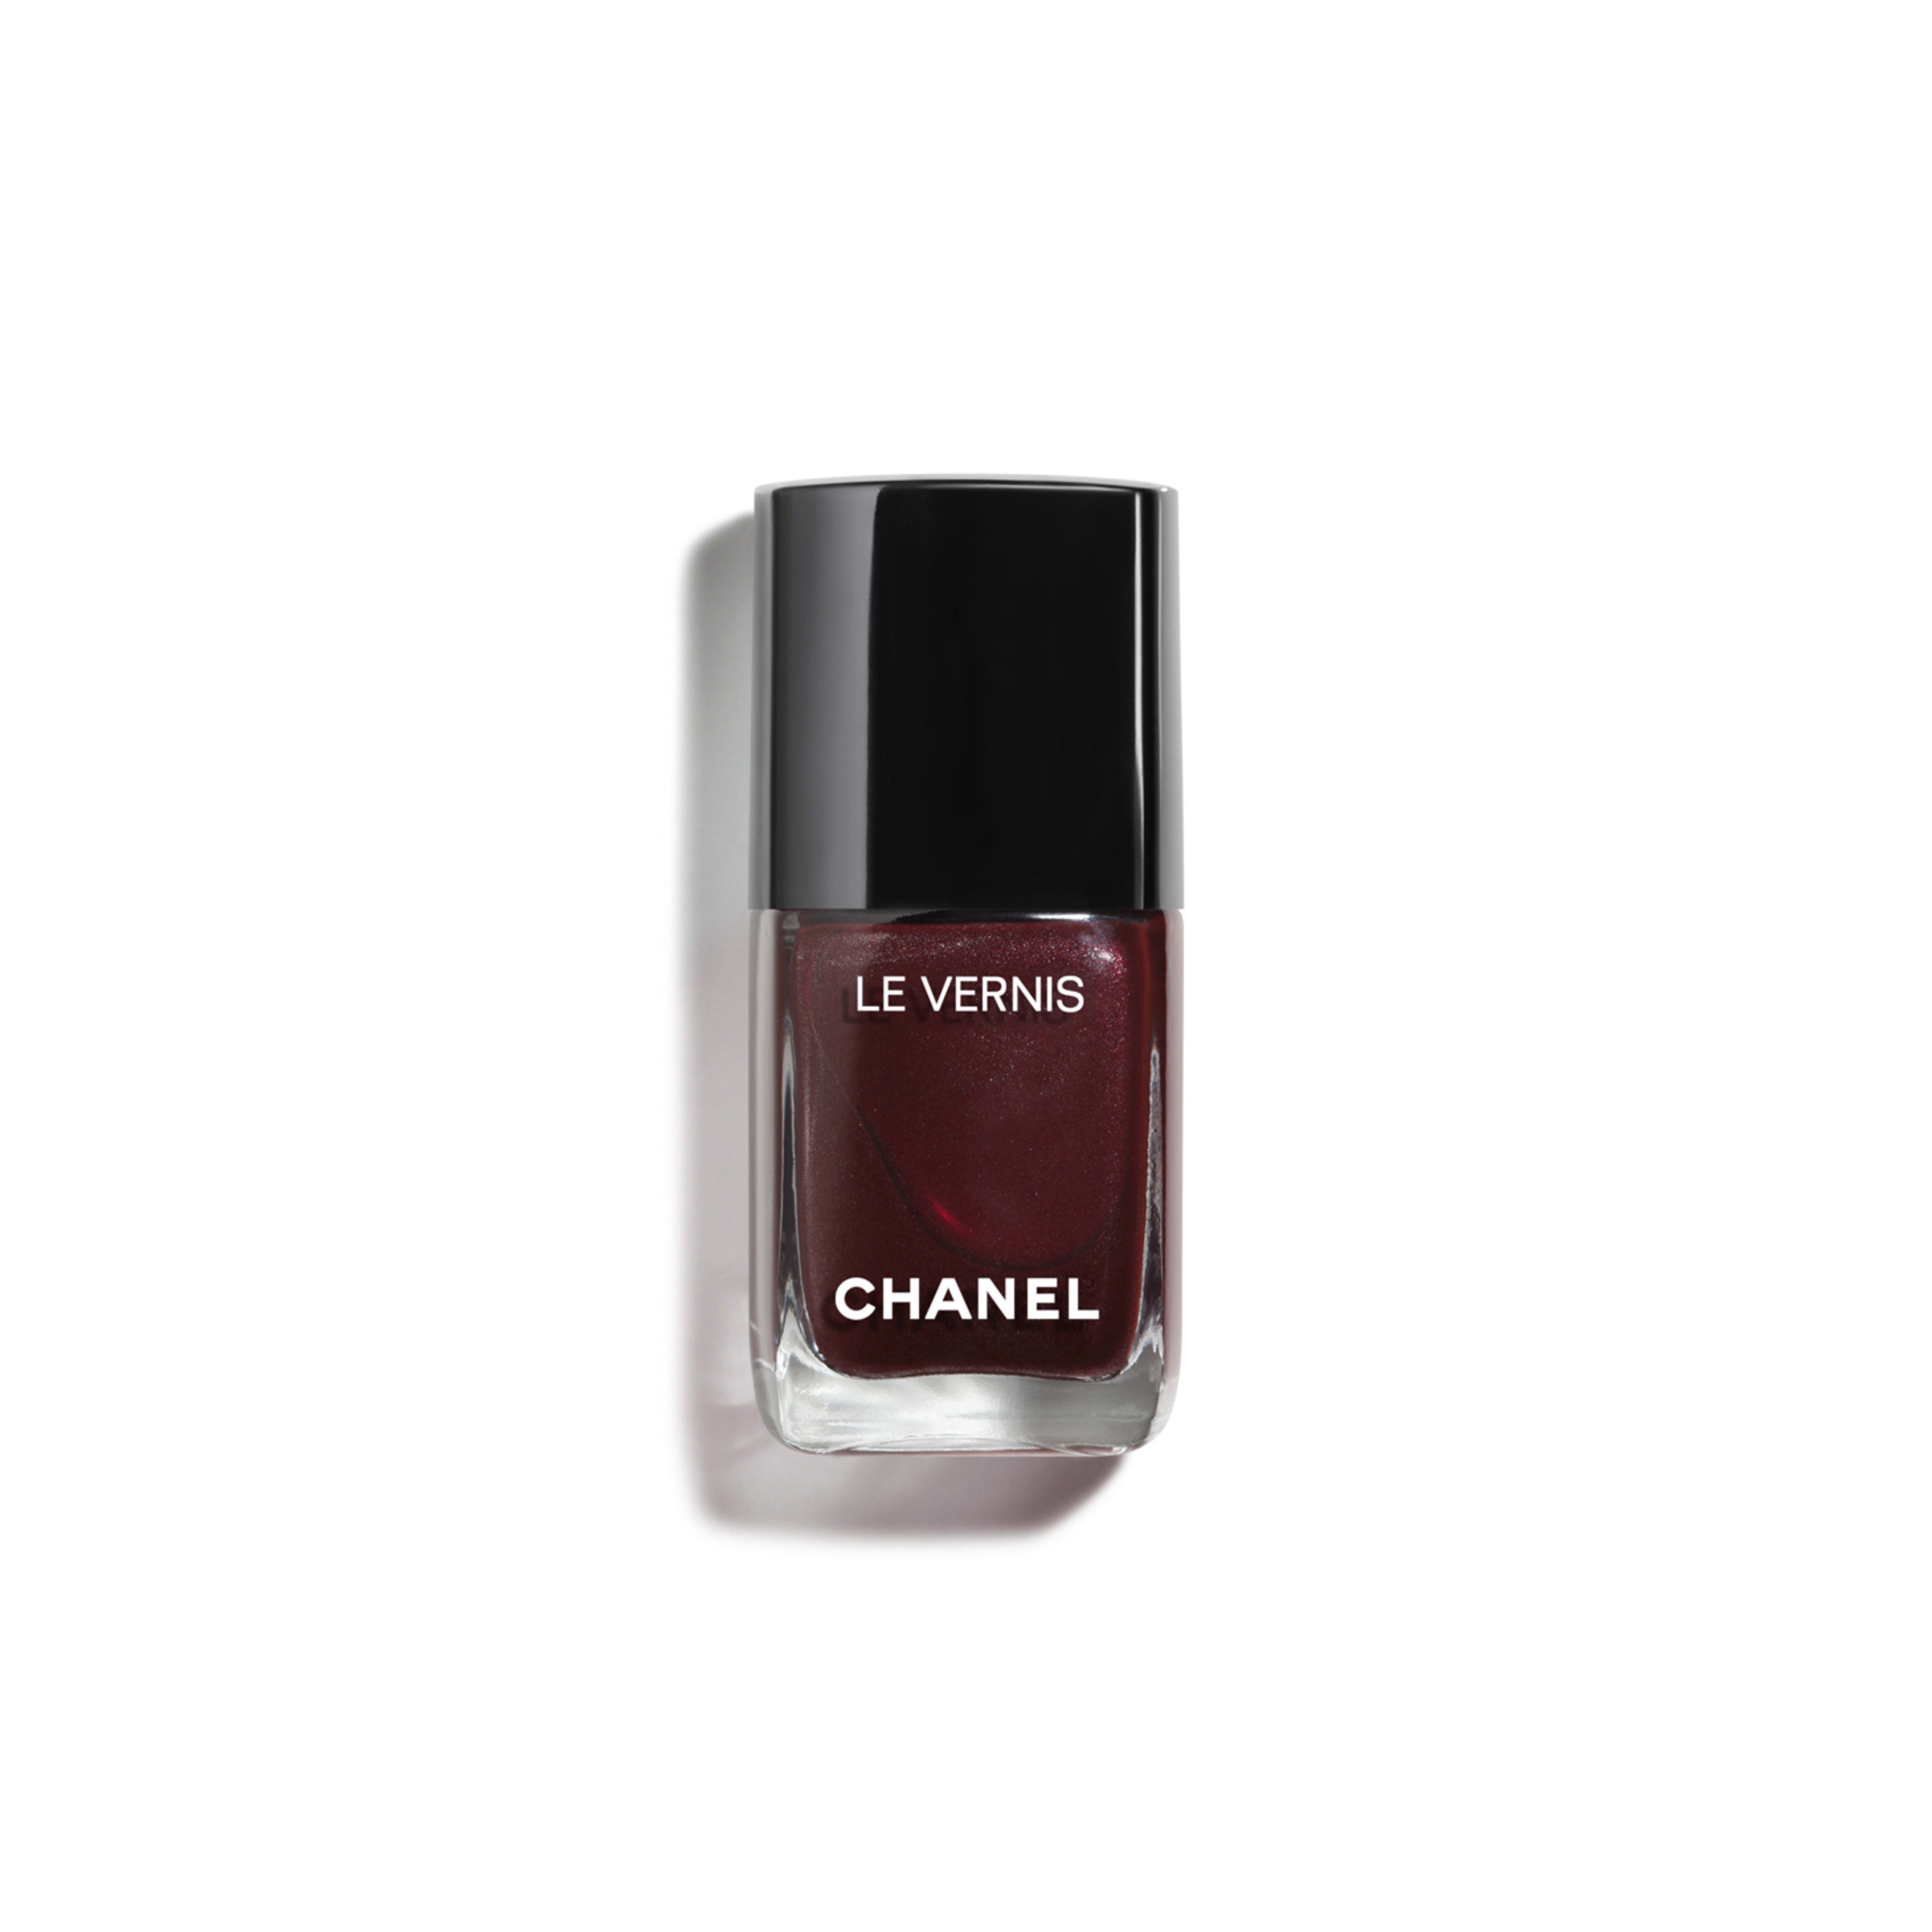 LE VERNIS - makeup - 0.4FL. OZ. - Default view